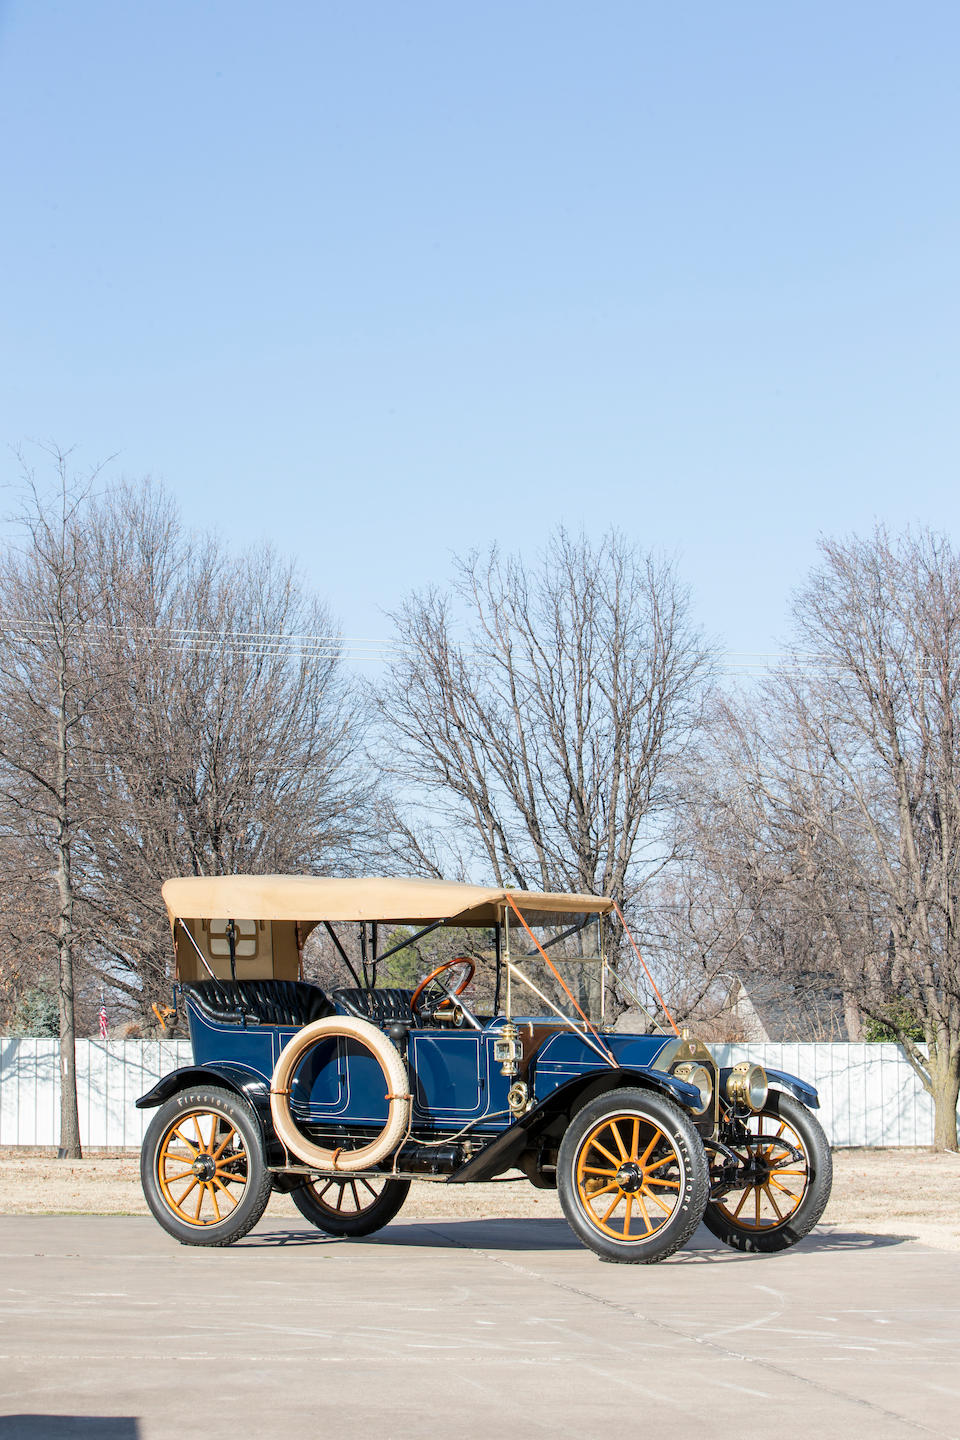 <b>1912 Crow-Elkhart Model 52 Five Passenger Touring</b><br />Chassis no. 5348<br />Engine no. 6415